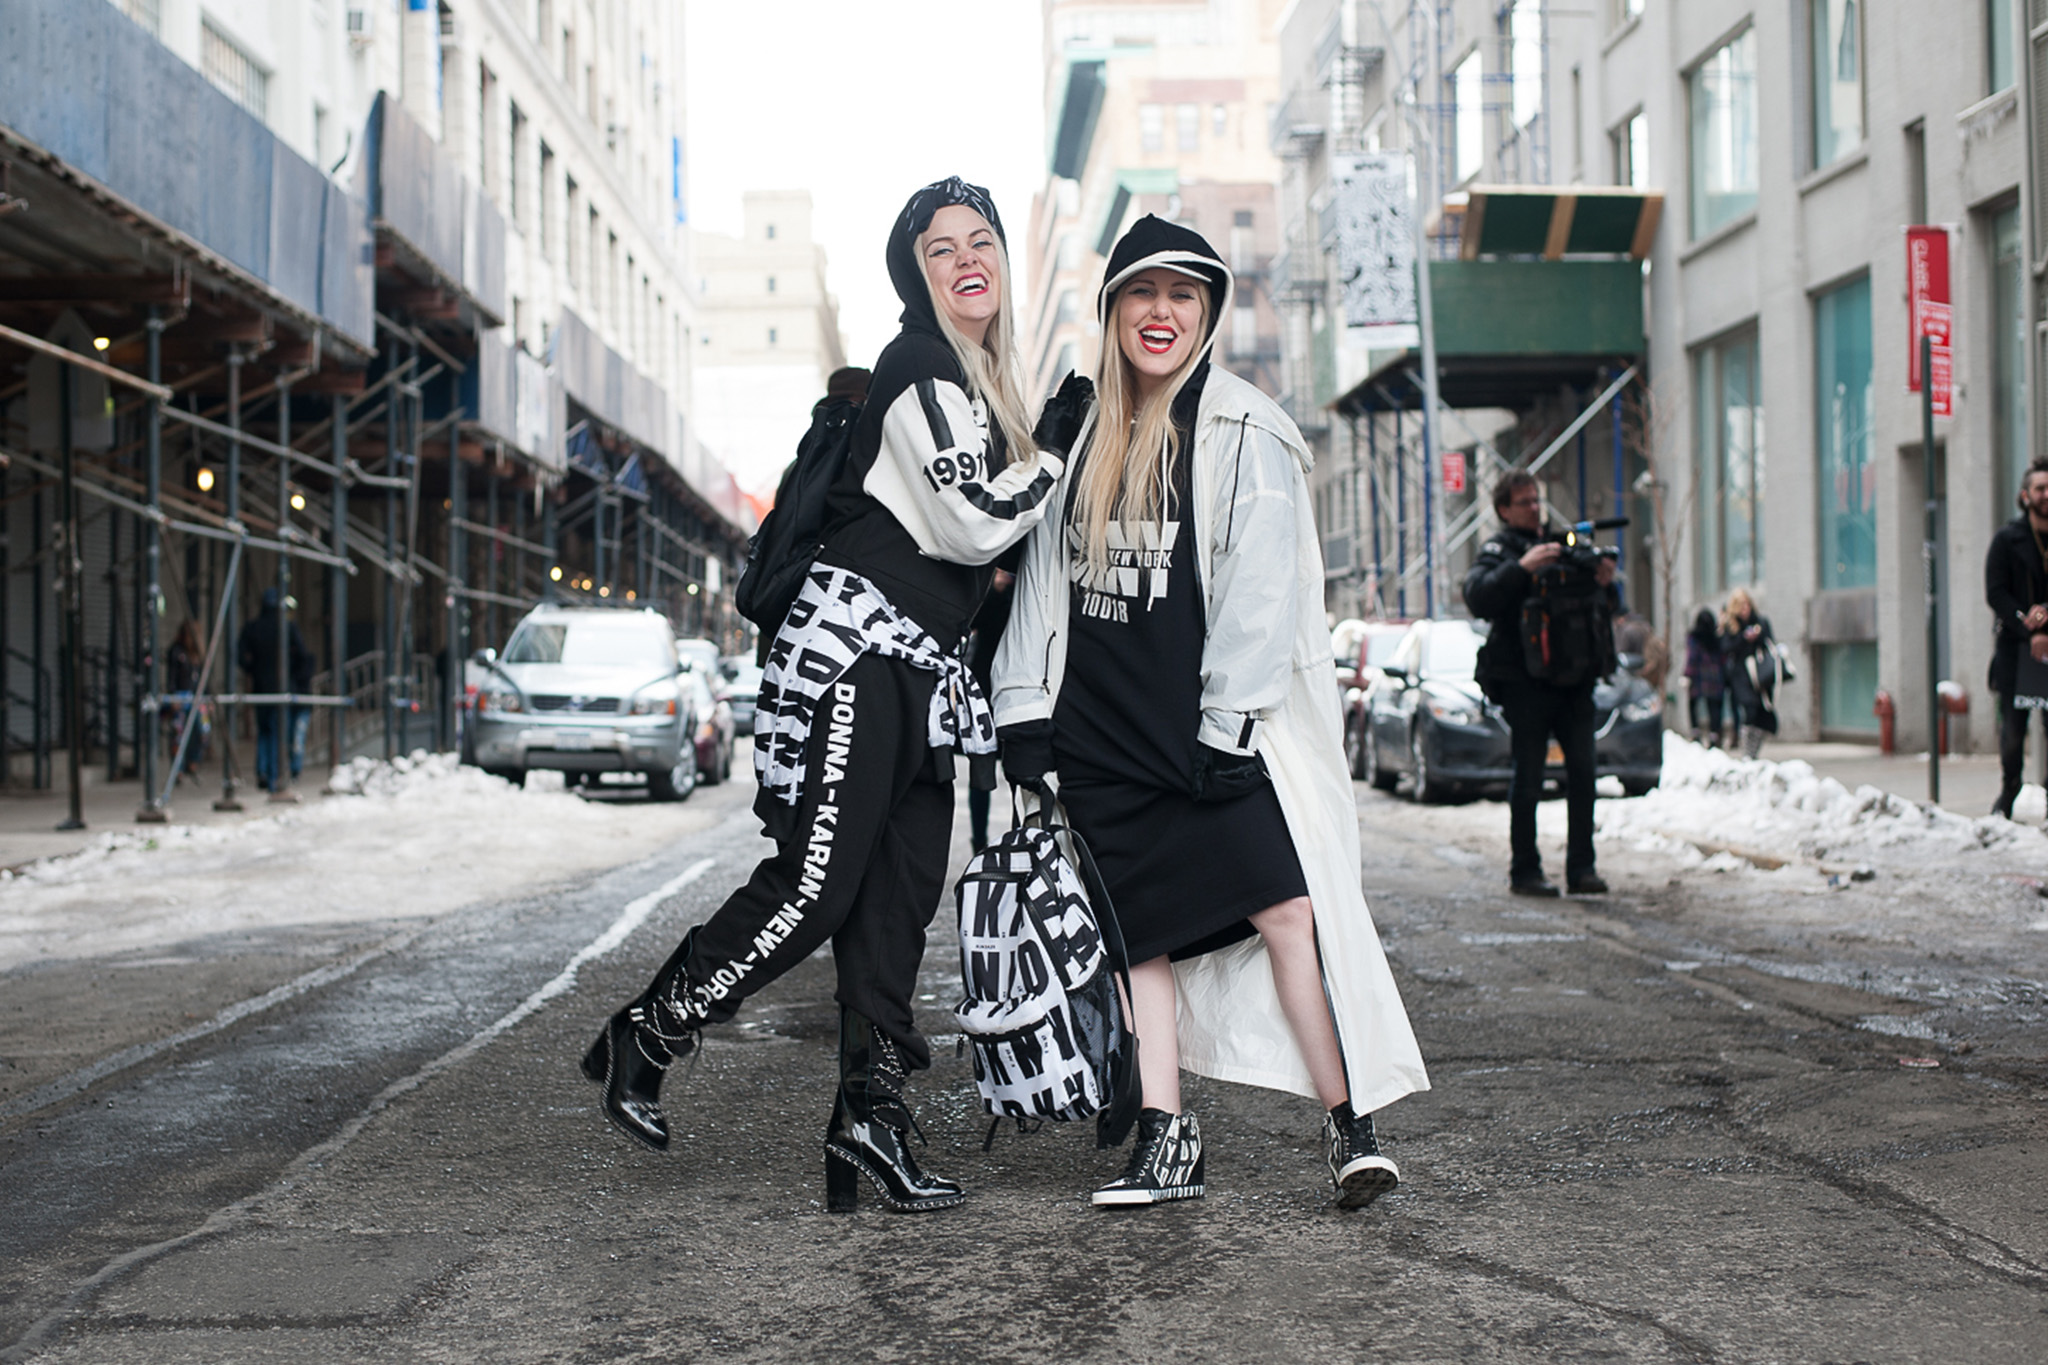 Two women in New York in winter